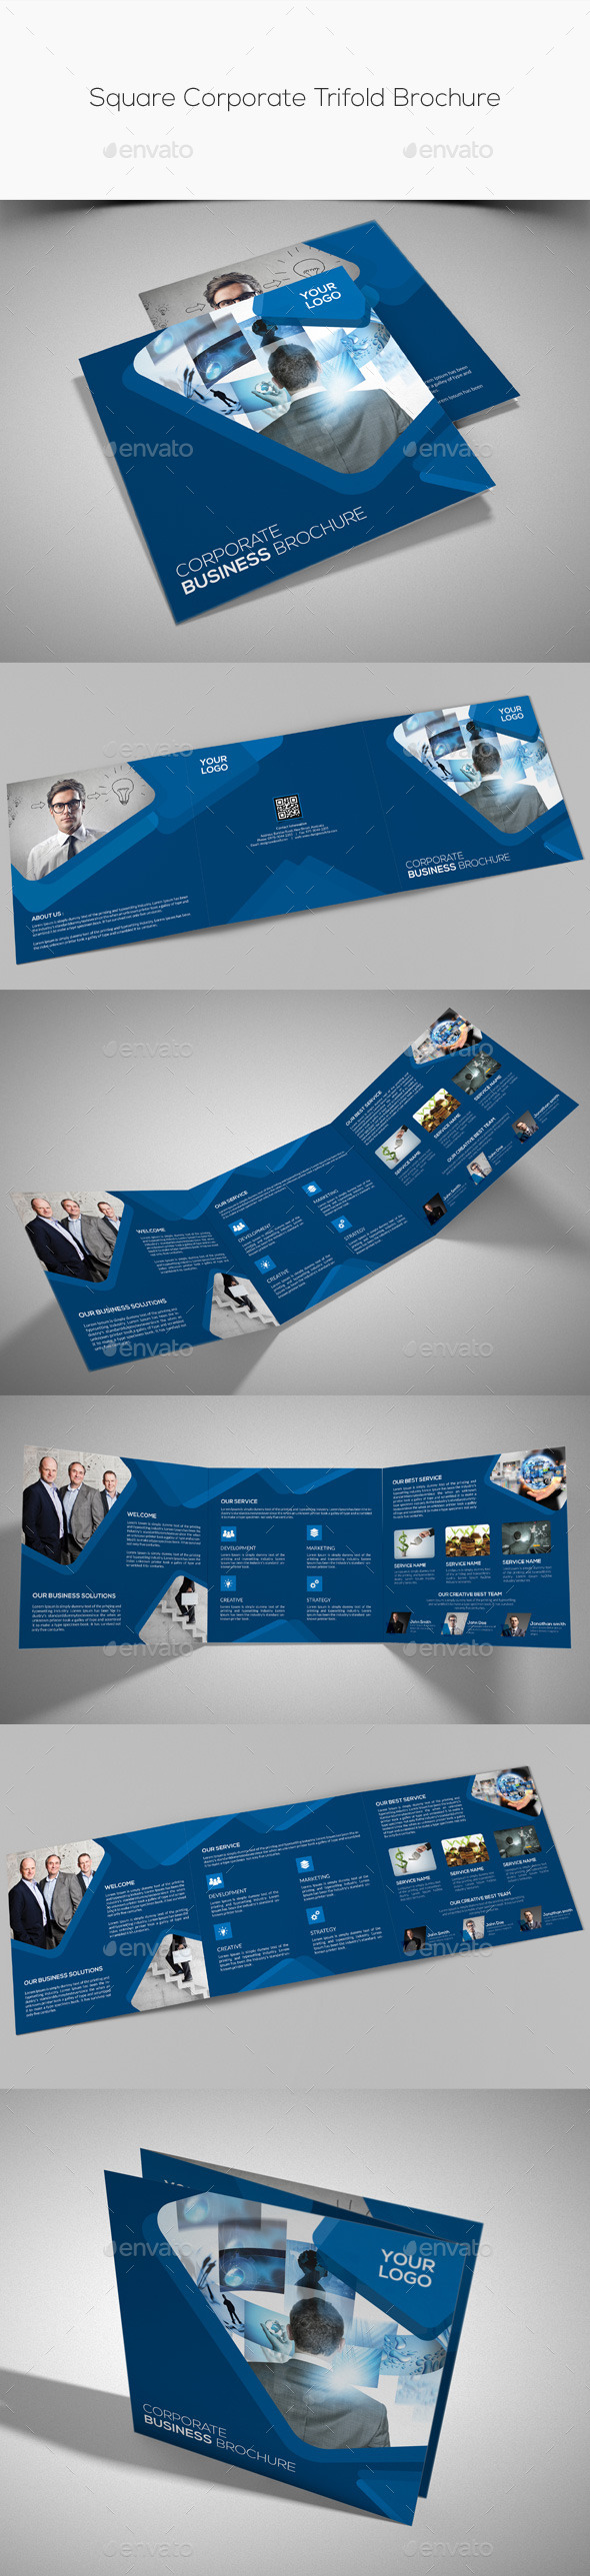 GraphicRiver Square Corporate Trifold Brochure 11267590